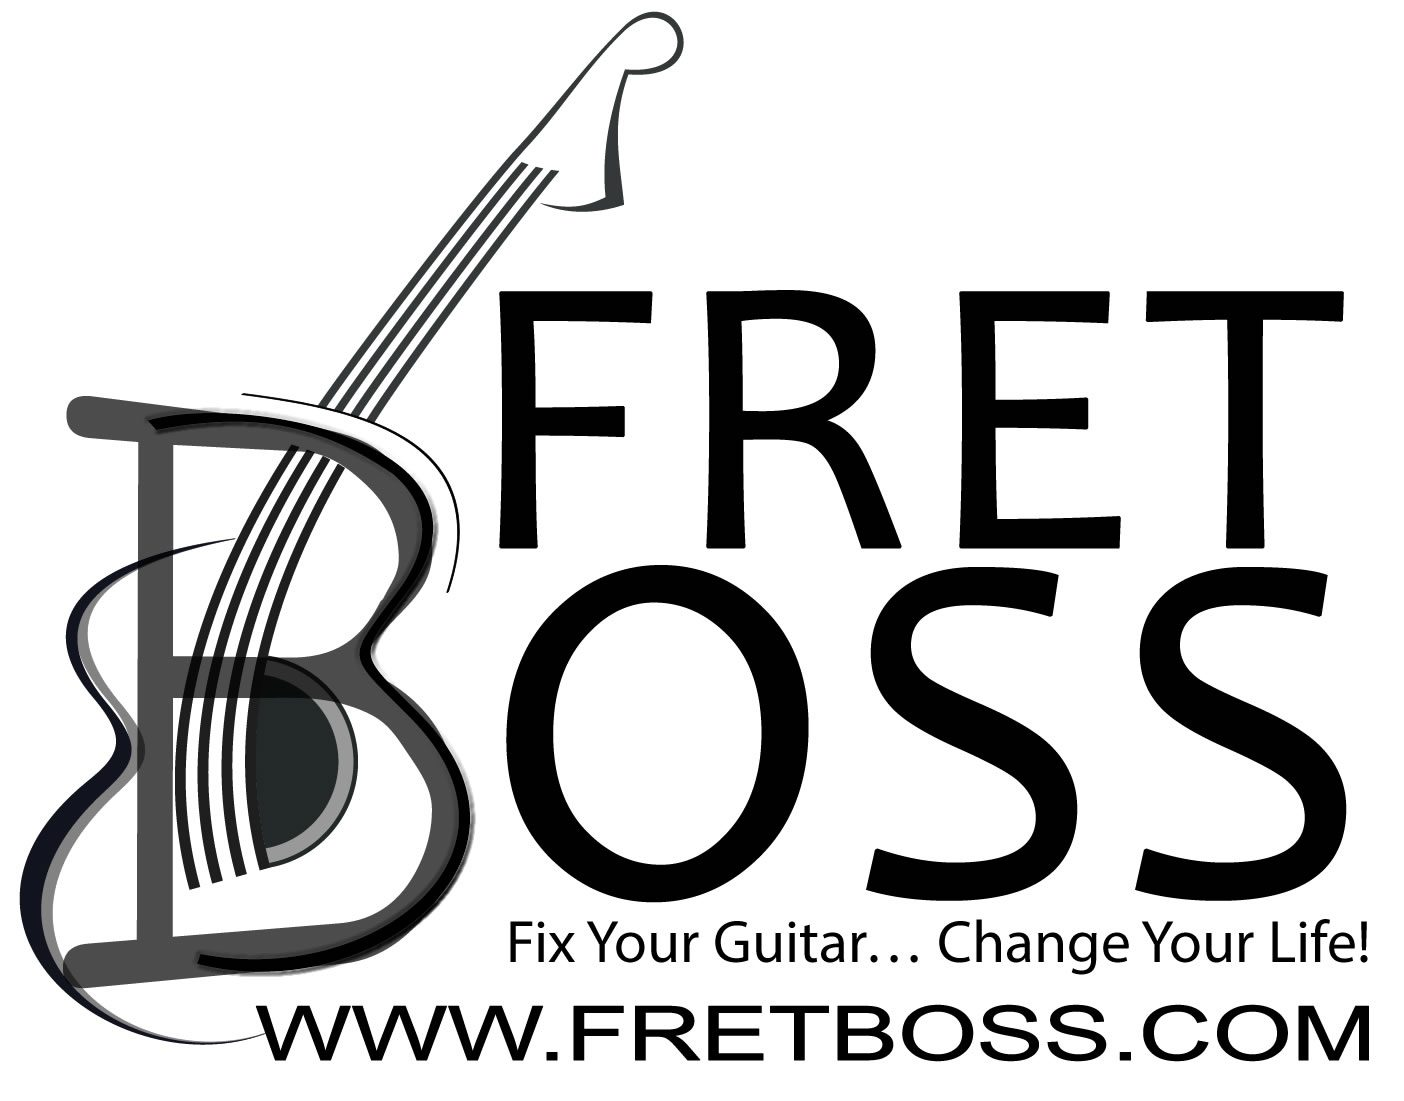 Fret Boss Guitar Works: Fix Your Guitar Change Your Life